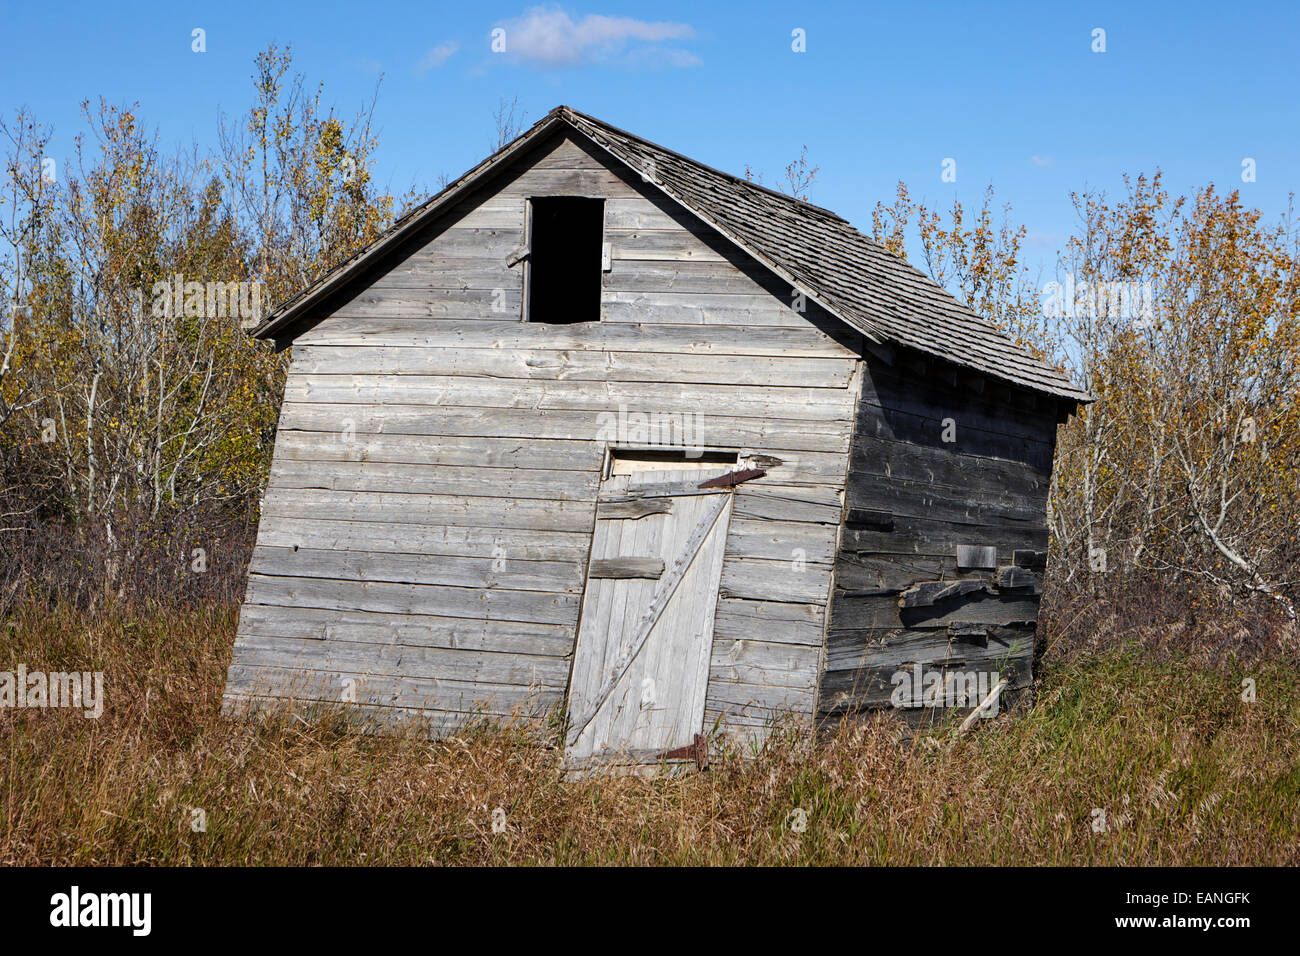 Building Falling Down : Rotting timber stock photos images